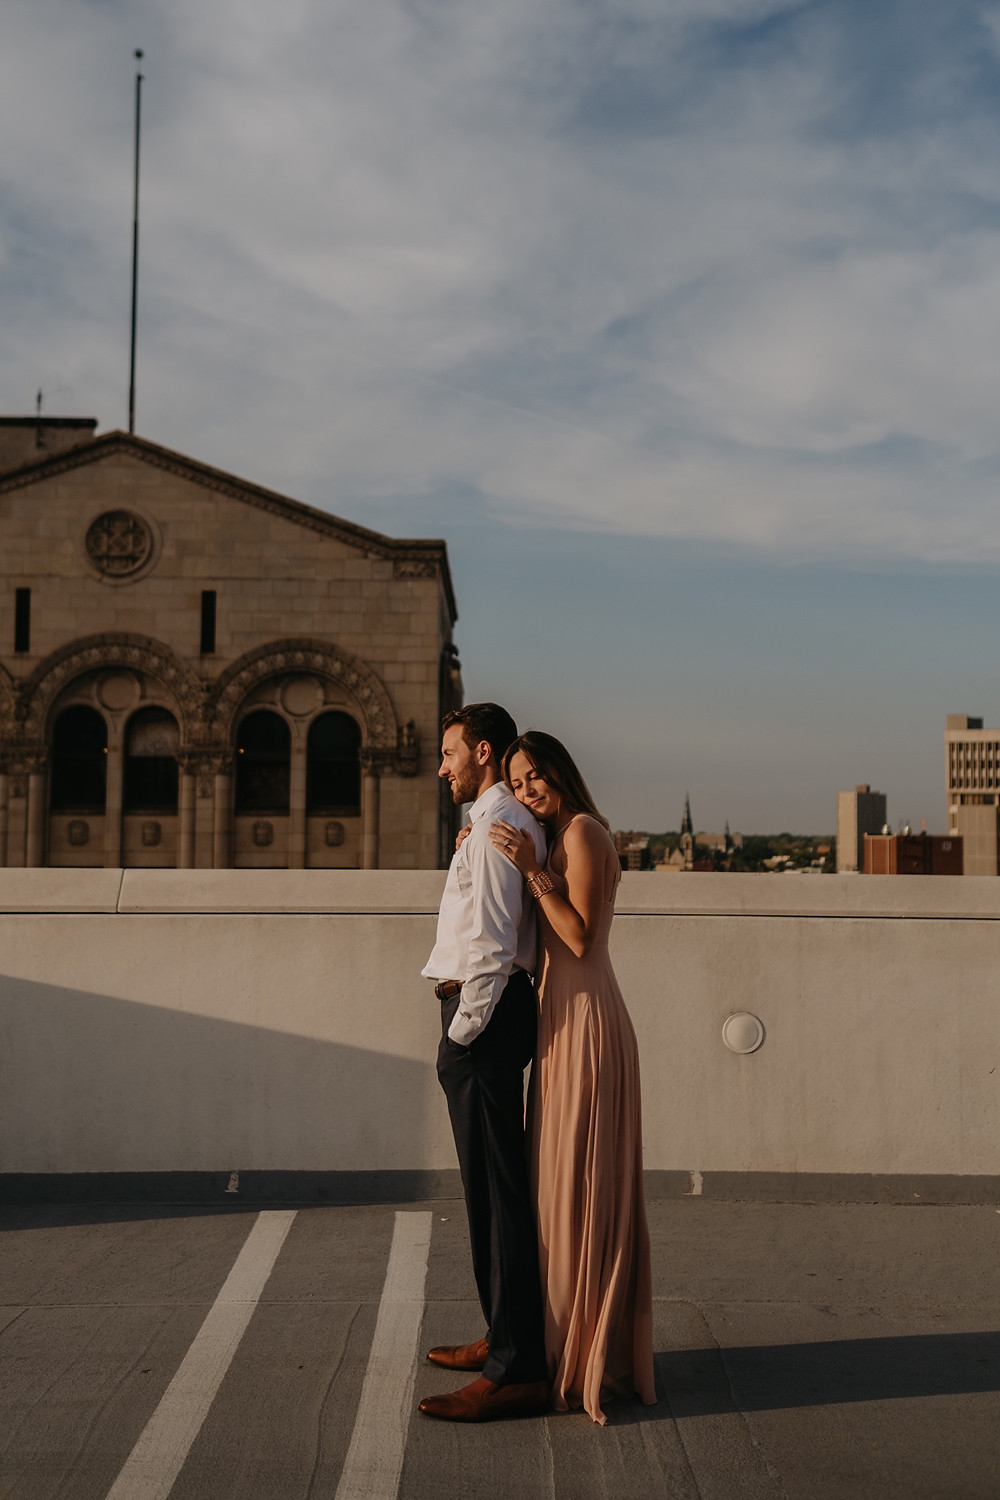 Engagement photos in downtown Detroit. Photographed by Nicole Leanne Photography.